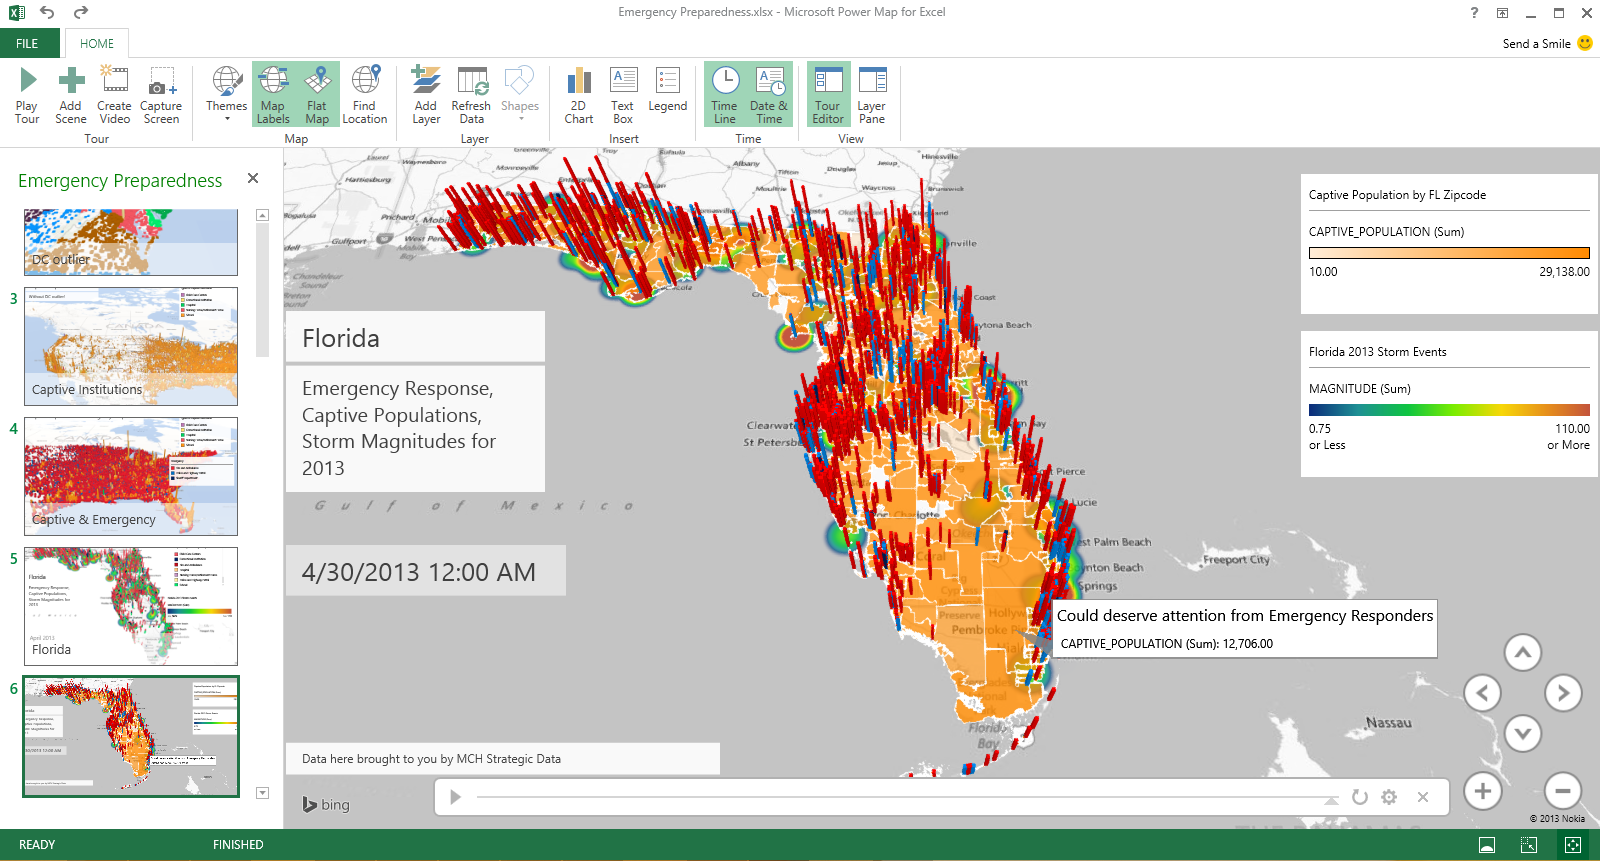 Ediblewildsus  Picturesque Power Map For Excel Now Generally Available Automatically Updated  With Extraordinary Power Map For Excel Now Generally Available Automatically Updated For Office  With Cool Excel Formula Cell Also Excel Budget Example In Addition Merge Two Tables In Excel And Discount Rate Excel As Well As How To Find Percent In Excel Additionally Two Sample T Test In Excel From Powerbimicrosoftcom With Ediblewildsus  Extraordinary Power Map For Excel Now Generally Available Automatically Updated  With Cool Power Map For Excel Now Generally Available Automatically Updated For Office  And Picturesque Excel Formula Cell Also Excel Budget Example In Addition Merge Two Tables In Excel From Powerbimicrosoftcom